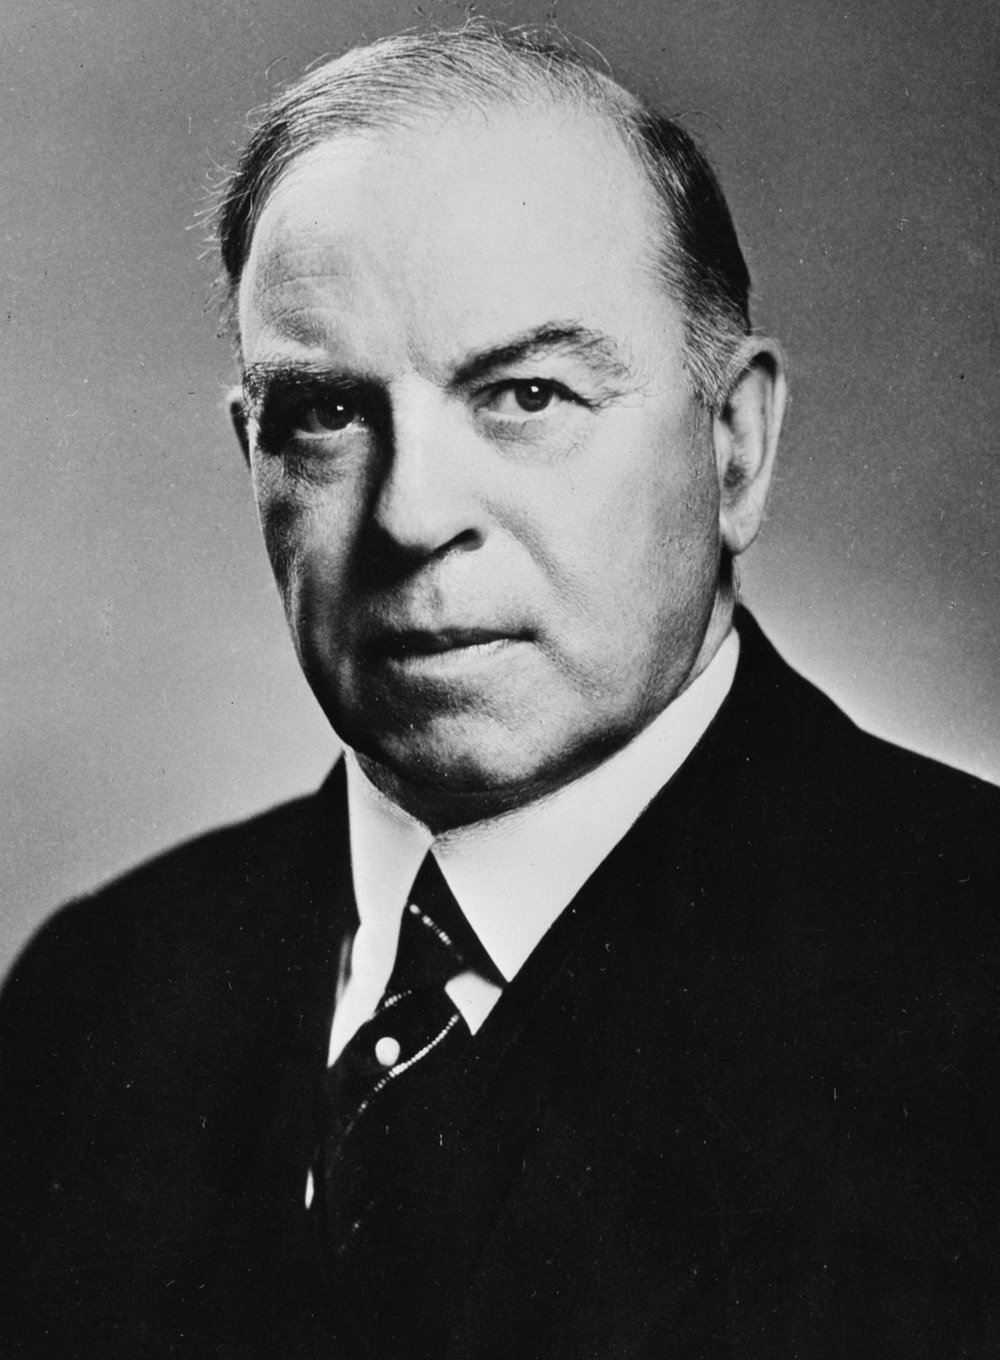 https://fr.wikipedia.org/wiki/William_Lyon_Mackenzie_King